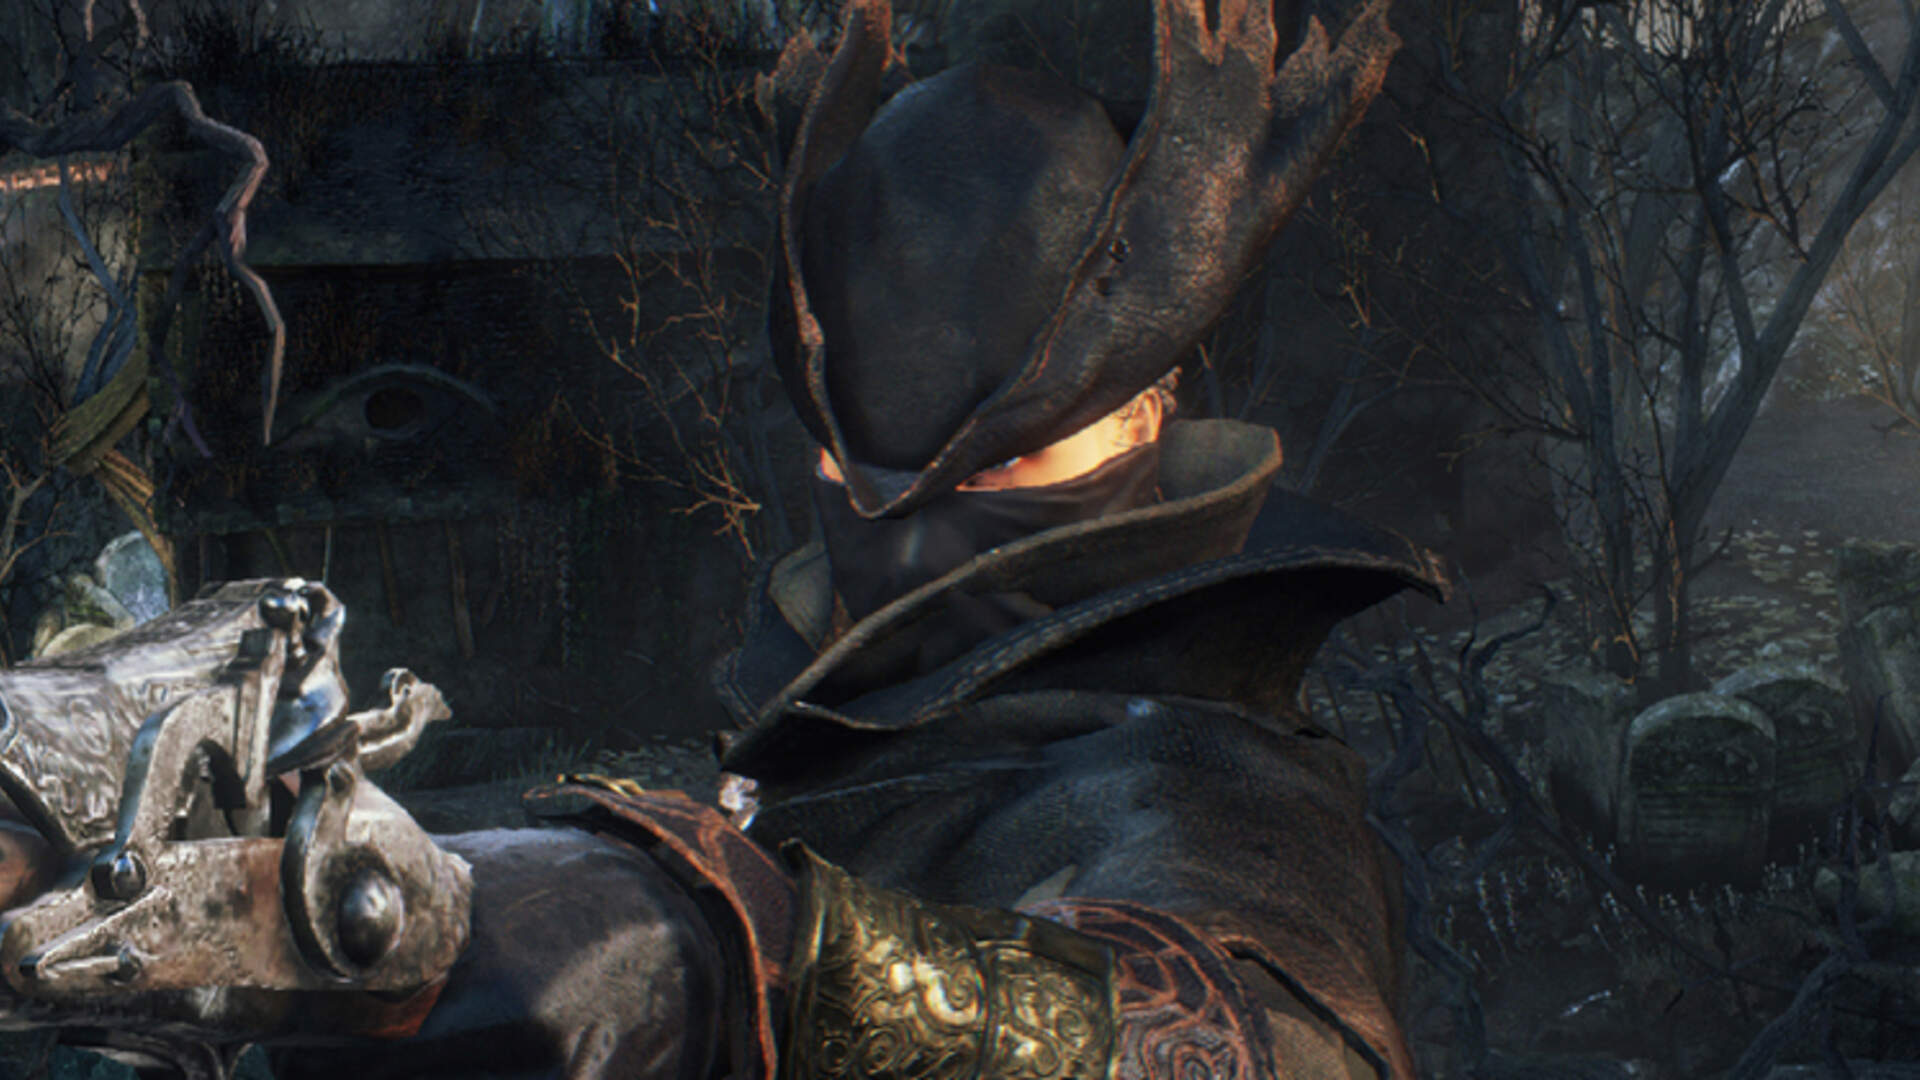 Bloodborne Blood-Starved Beast Boss Guide - How to Defeat the Blood-Starved Beast